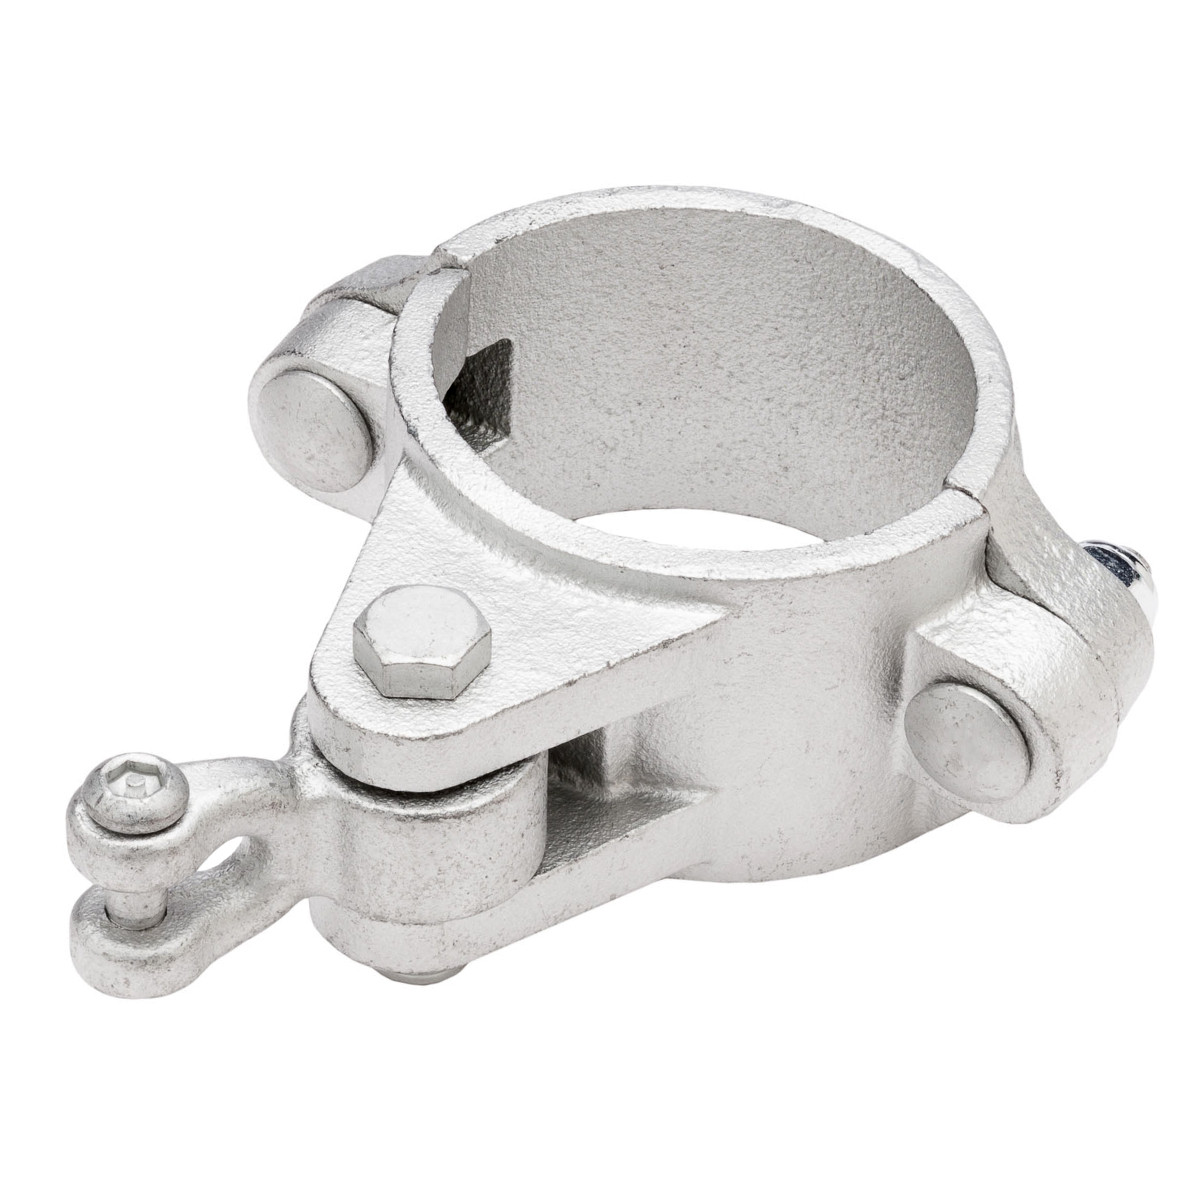 Galvanized Ductile Iron Pipe Beam Swing Hanger with Clevis - SH-24